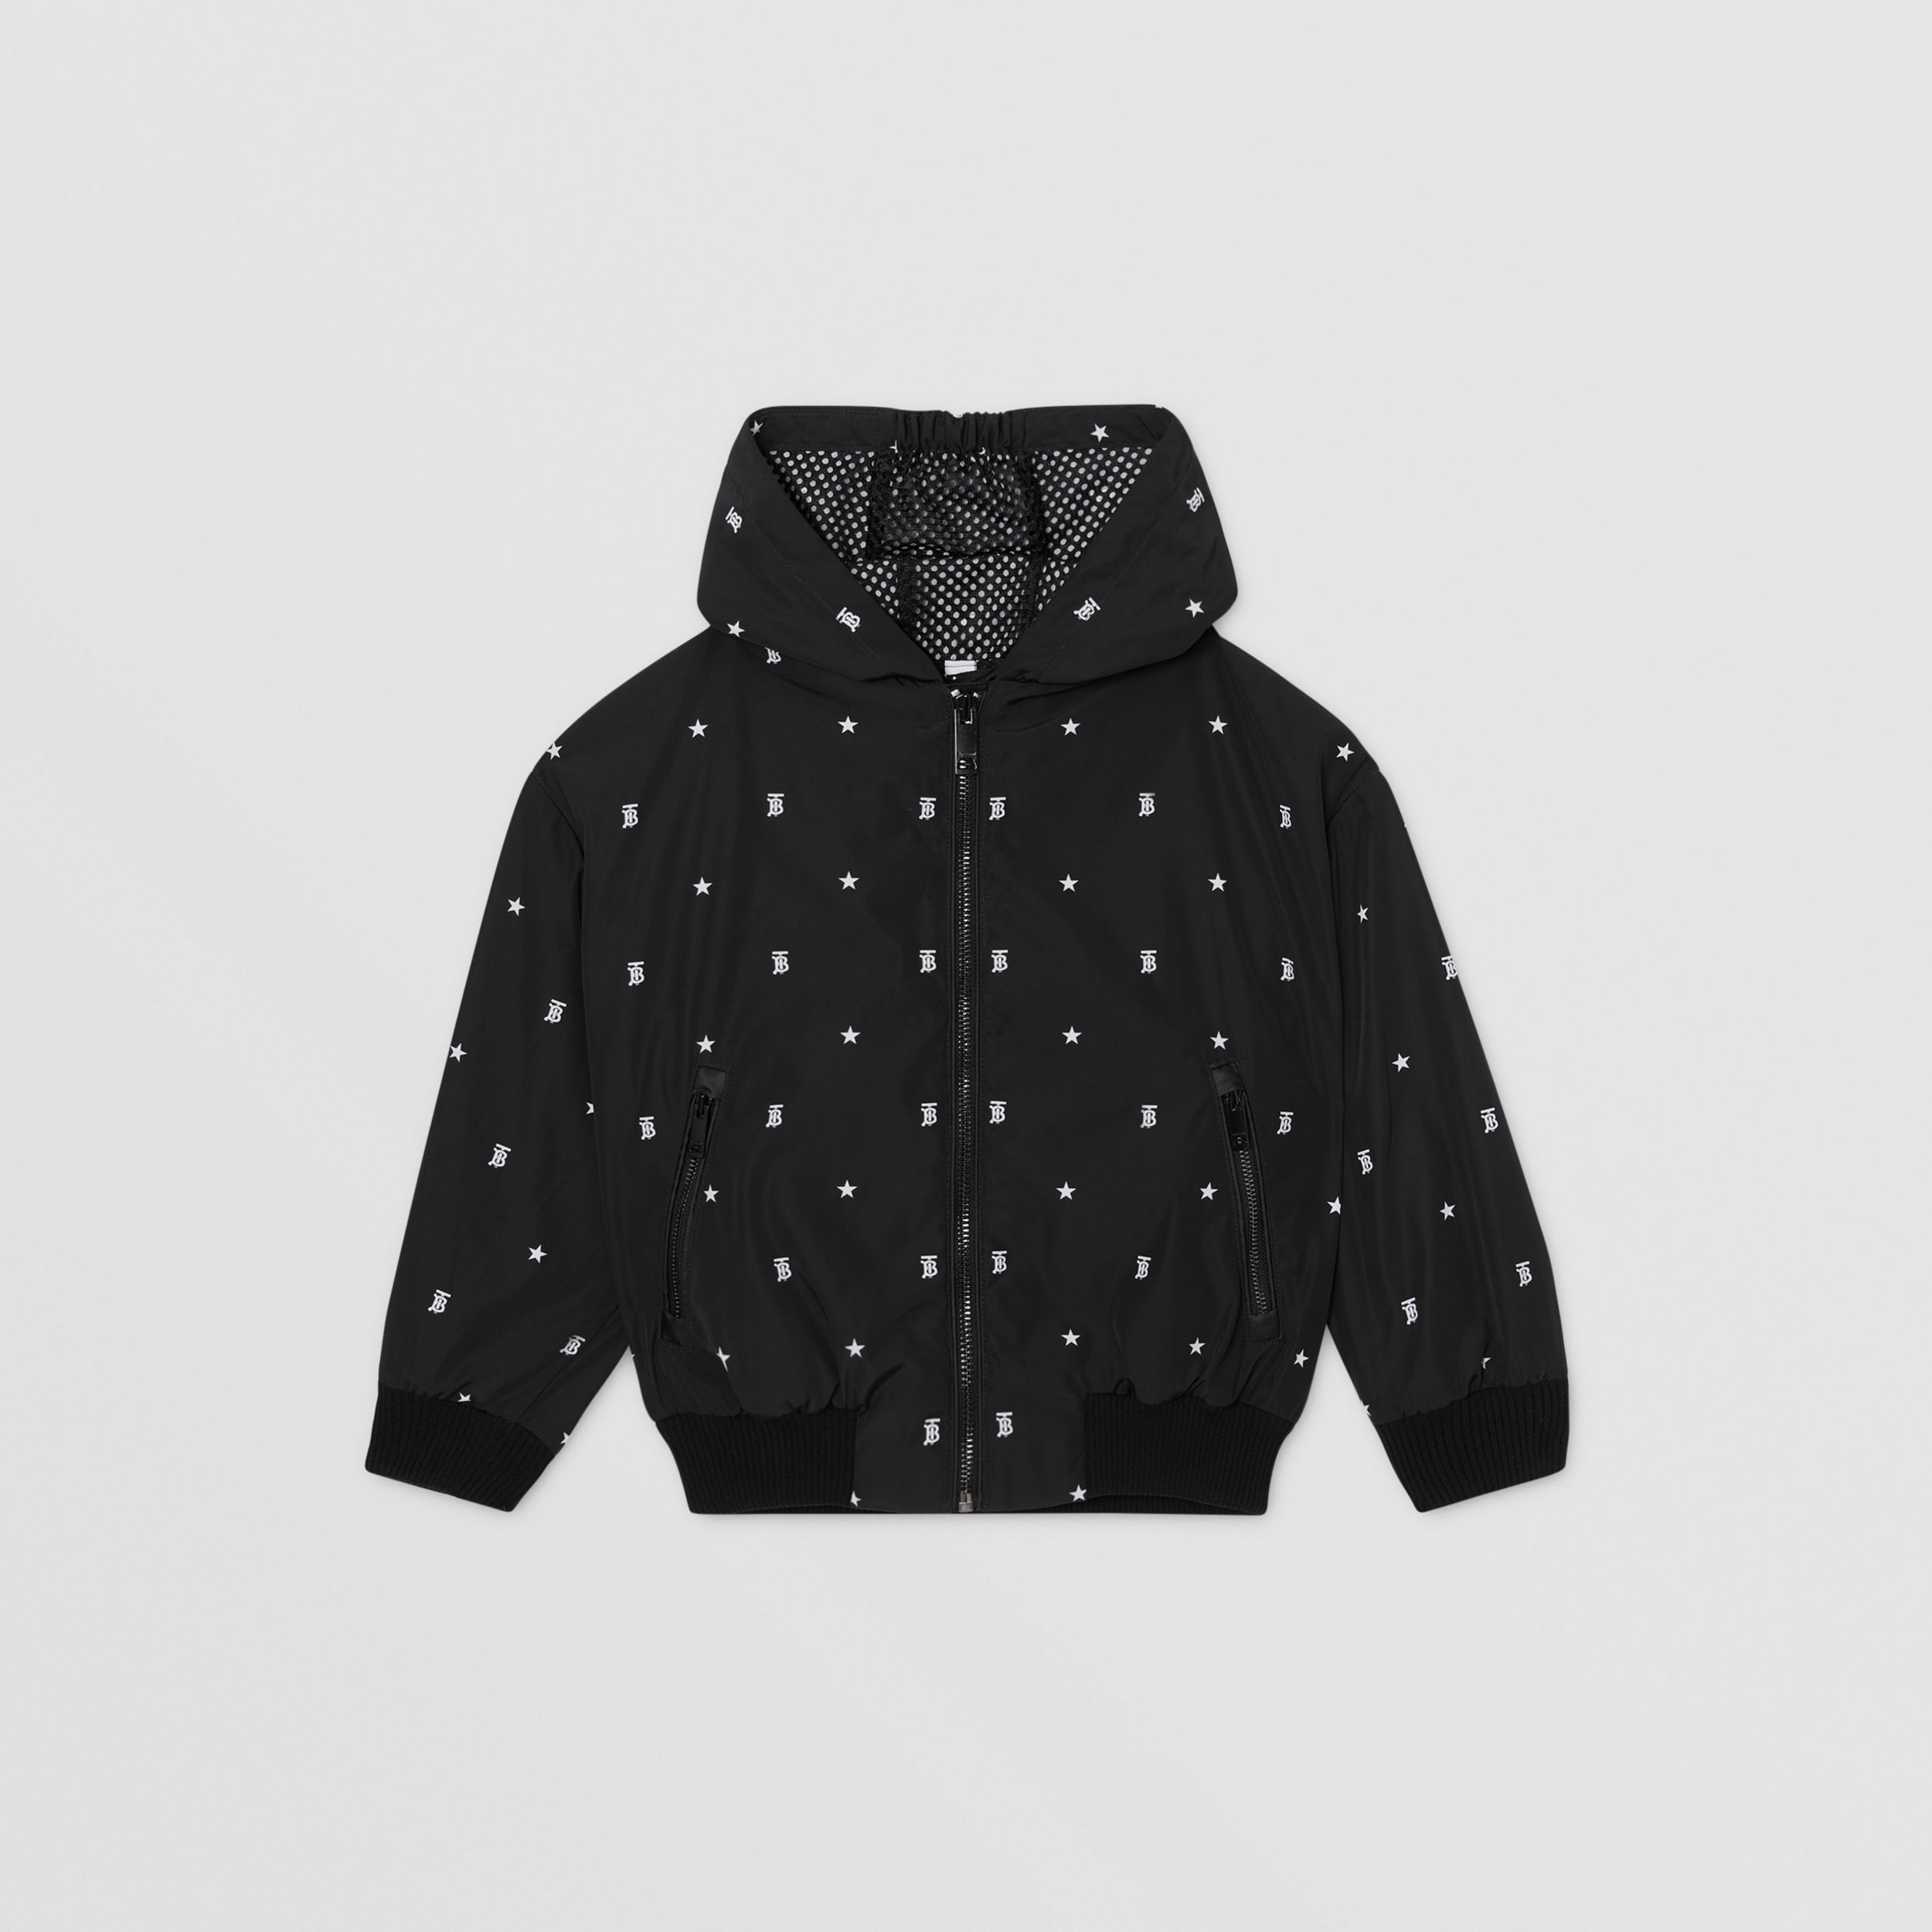 Star and Monogram Motif Lightweight Hooded Jacket in Black | Burberry - 1